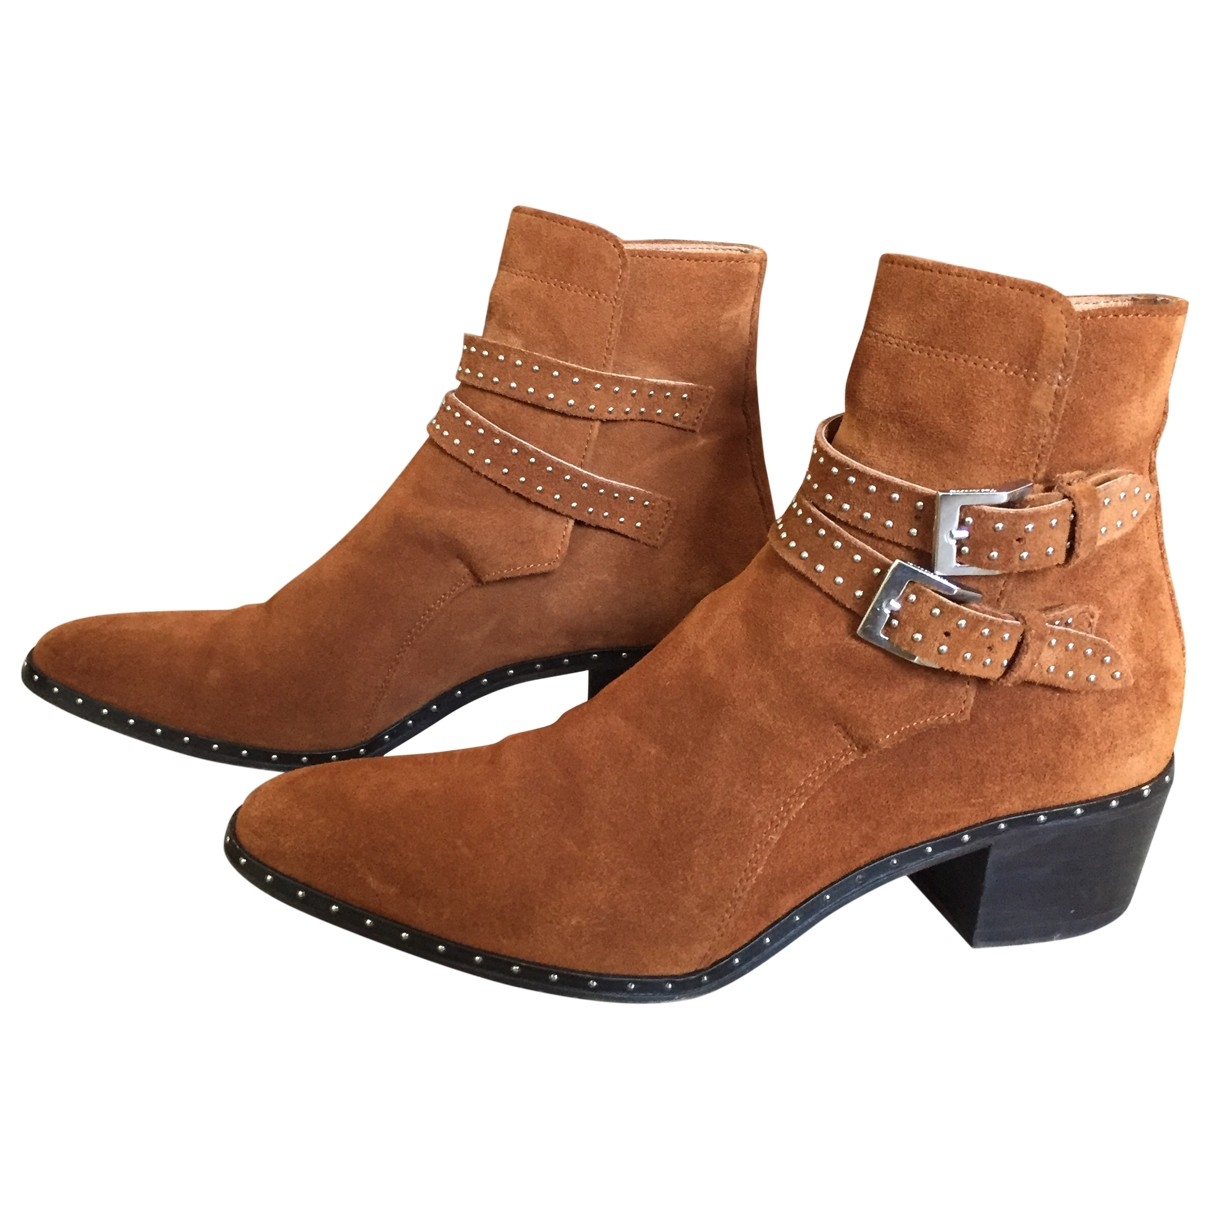 The Kooples \N Camel Leather Ankle boots for Women 38 EU